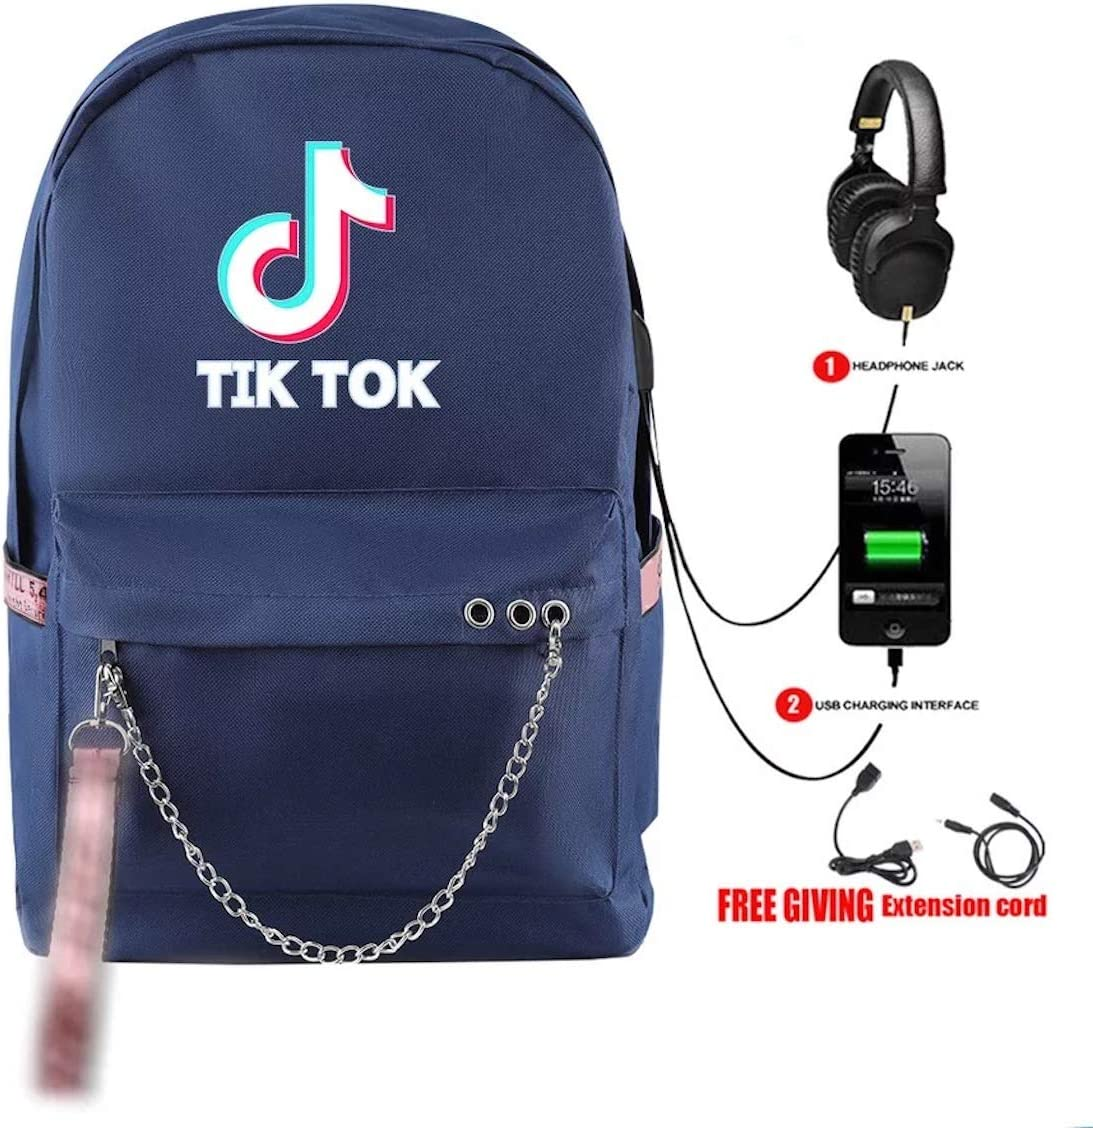 Gin-back Kids Back to School TikTok USB Charging Backpack Bag-Canvas Travel Daypack with Headphone Port Graphic Backpack